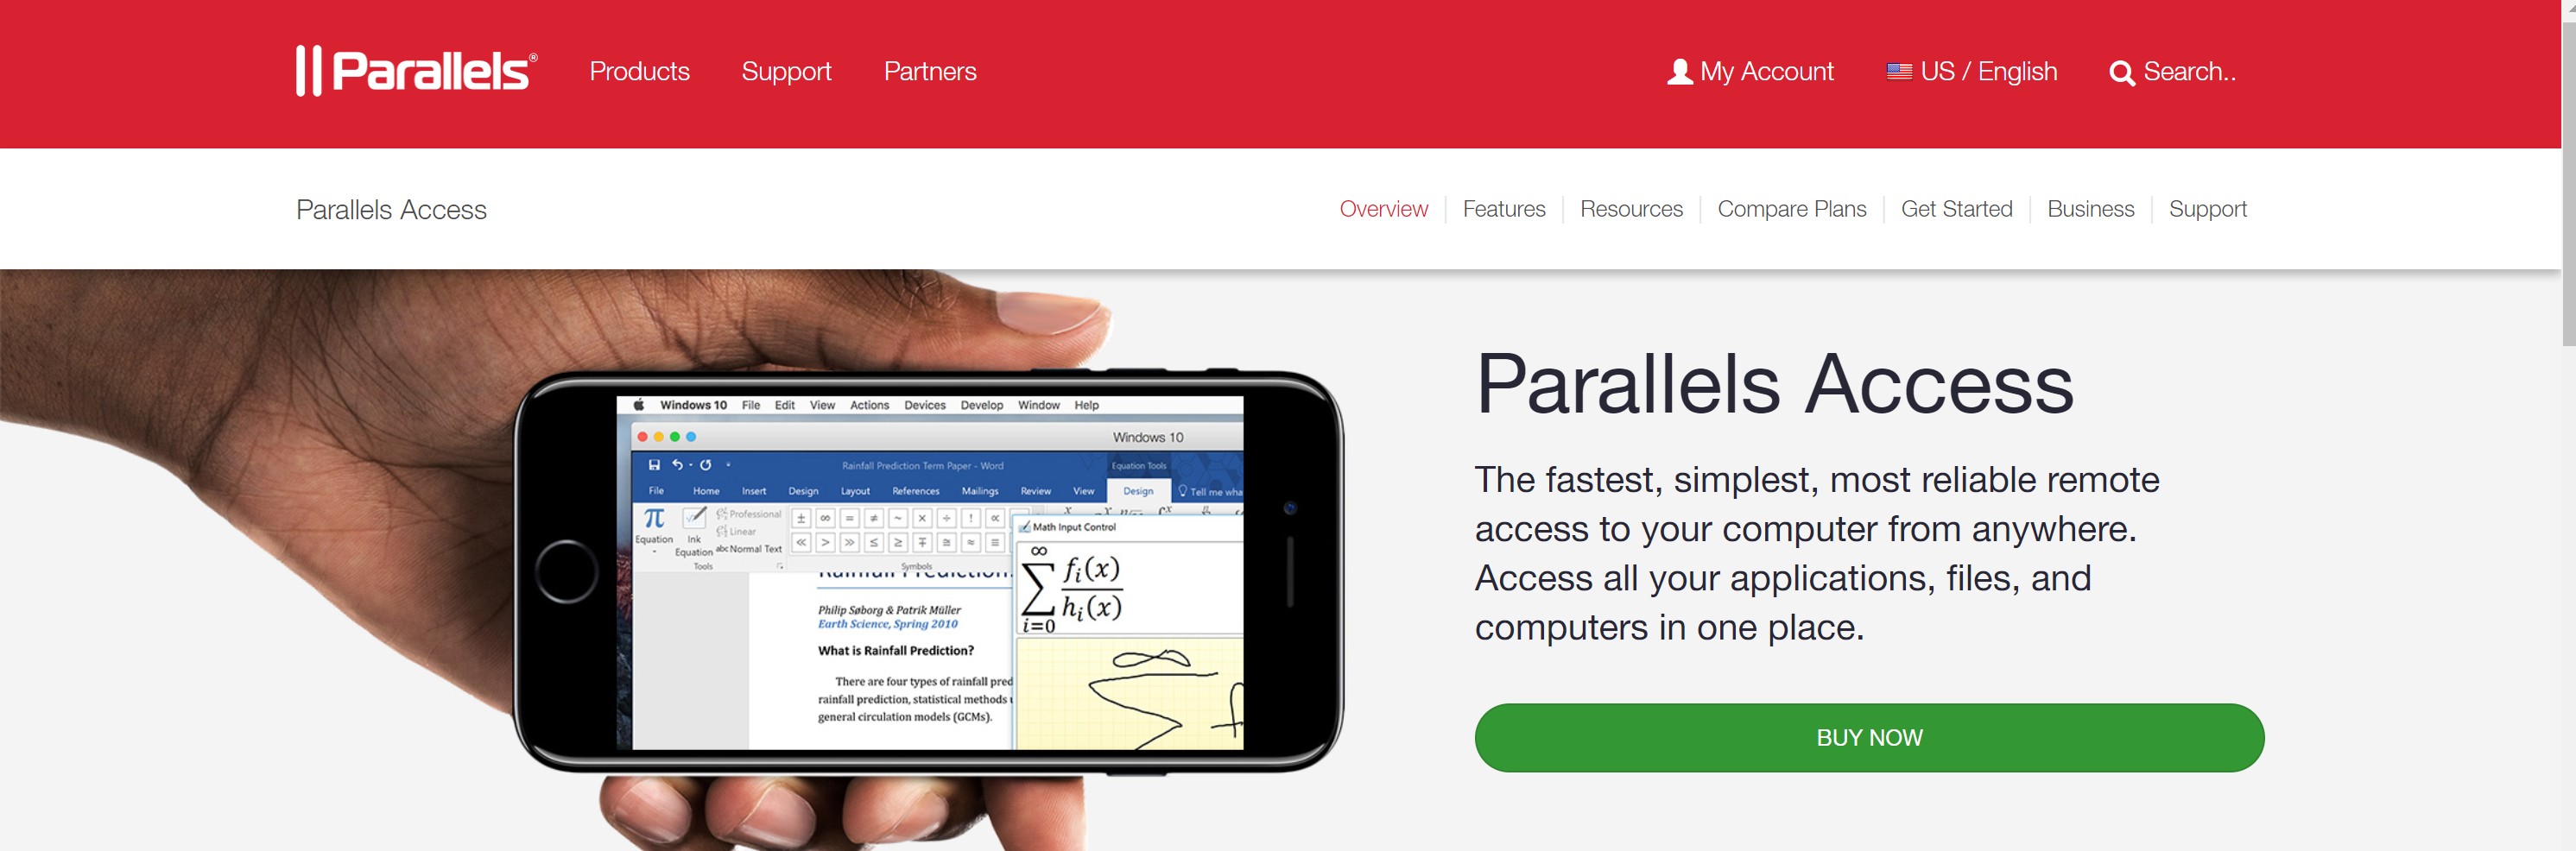 Parallels access review